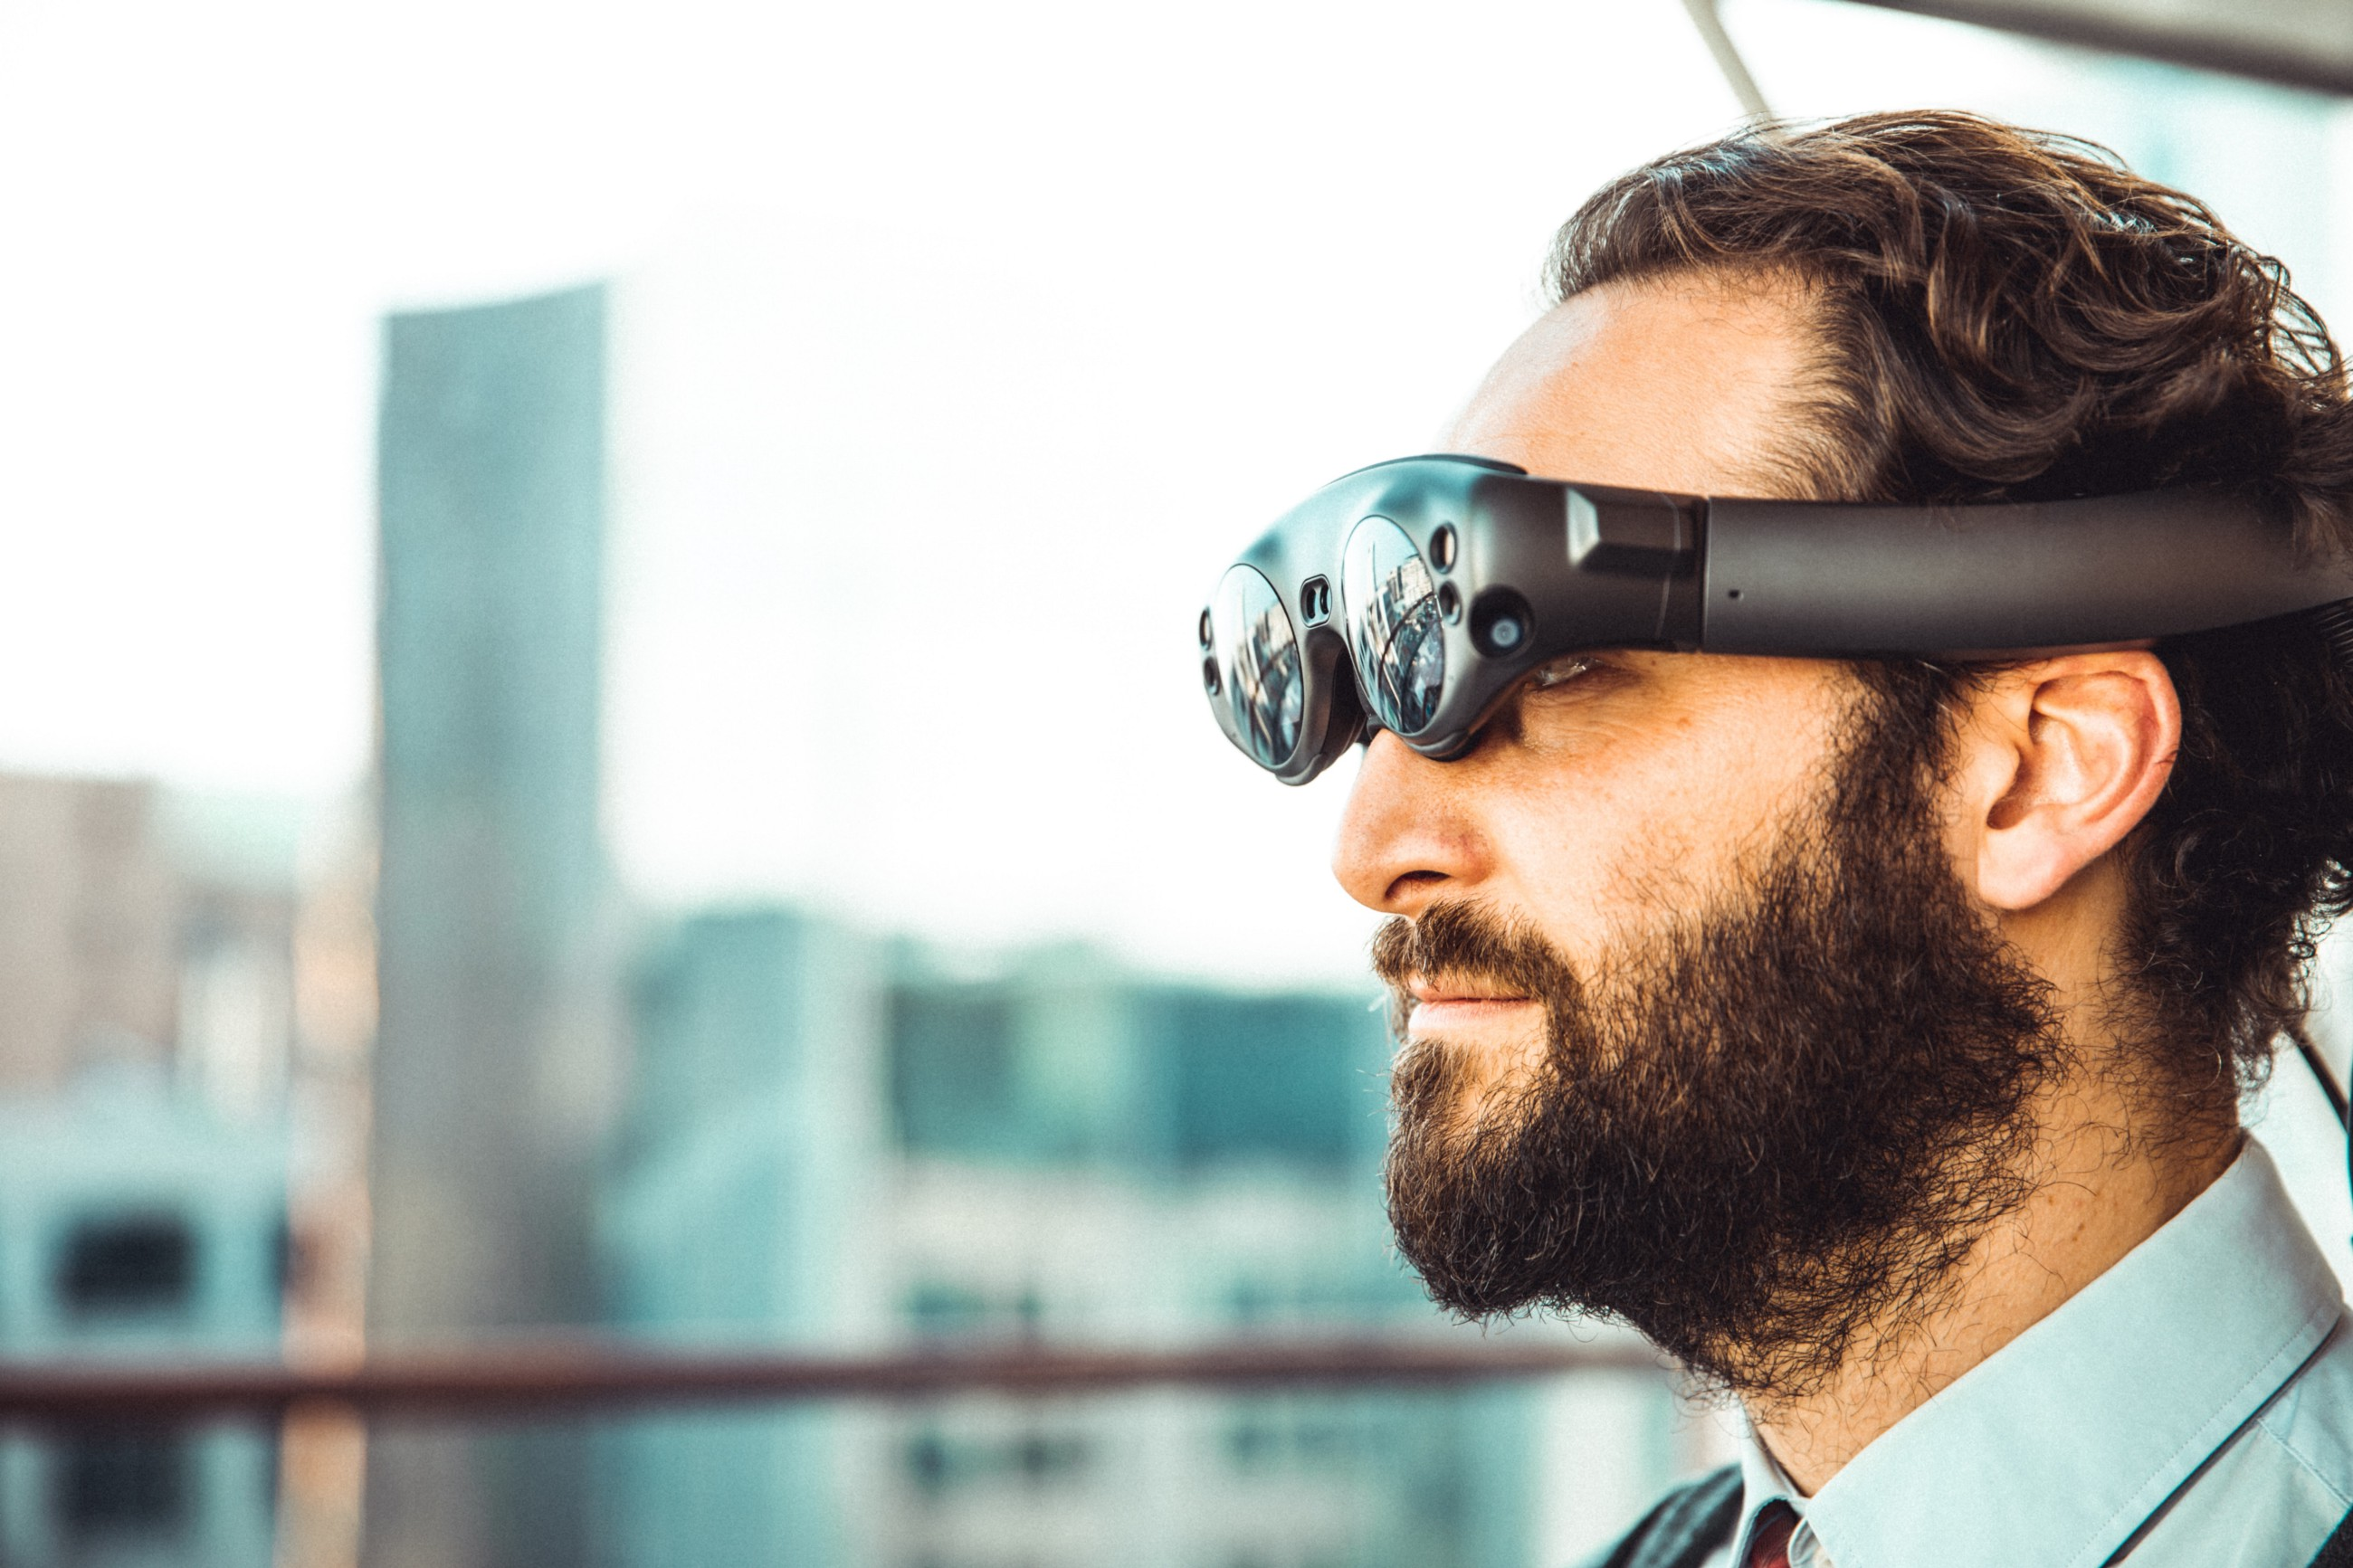 10 Augmented Reality glasses you can buy now